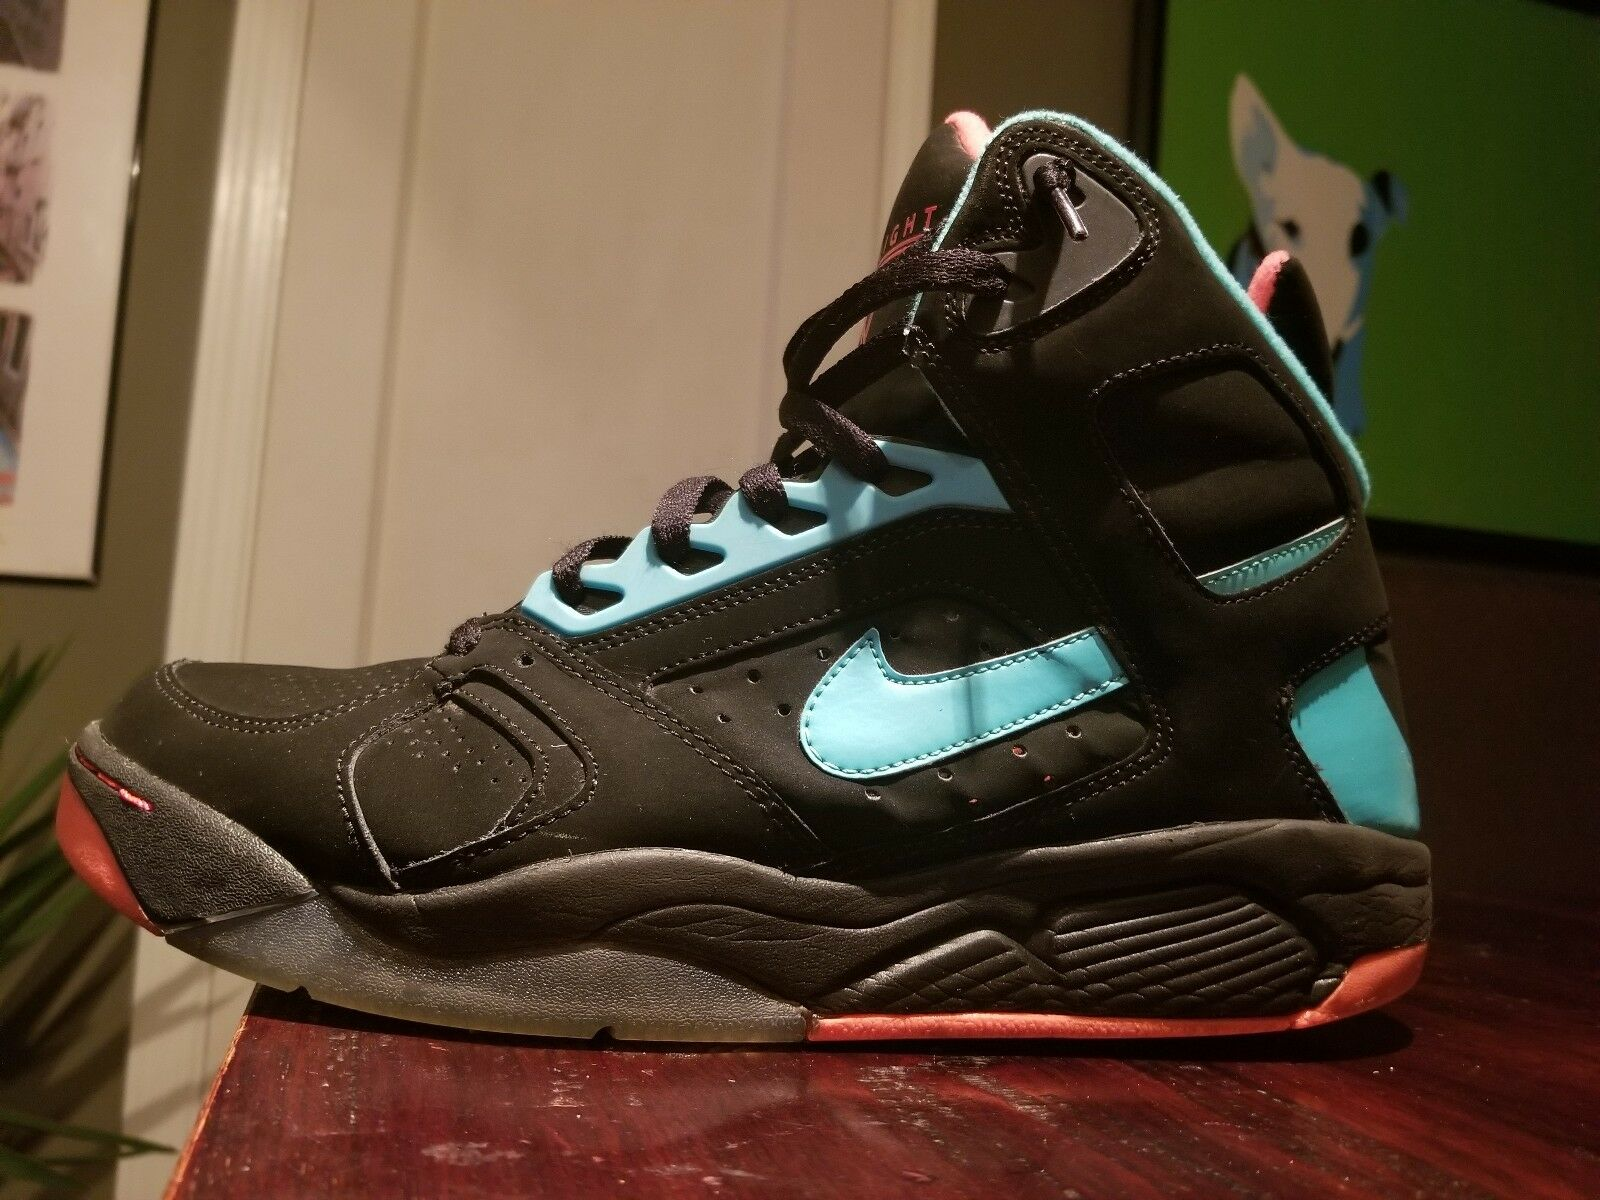 Nike Air Flights Miami vice color scheme Wild casual shoes